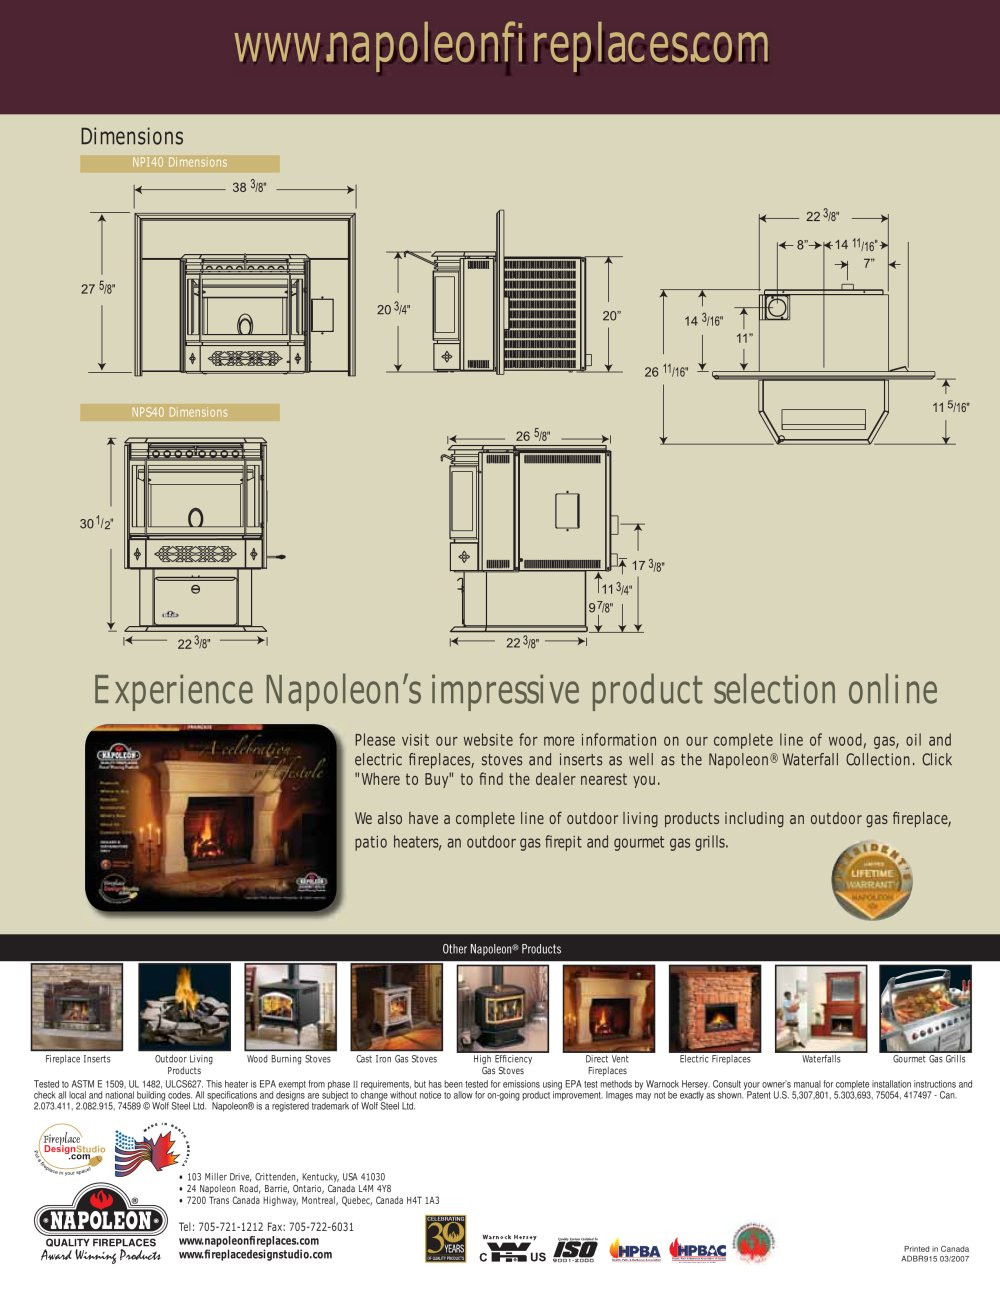 Pellet Stoves by Breckwell - Gas Stove's Specifications